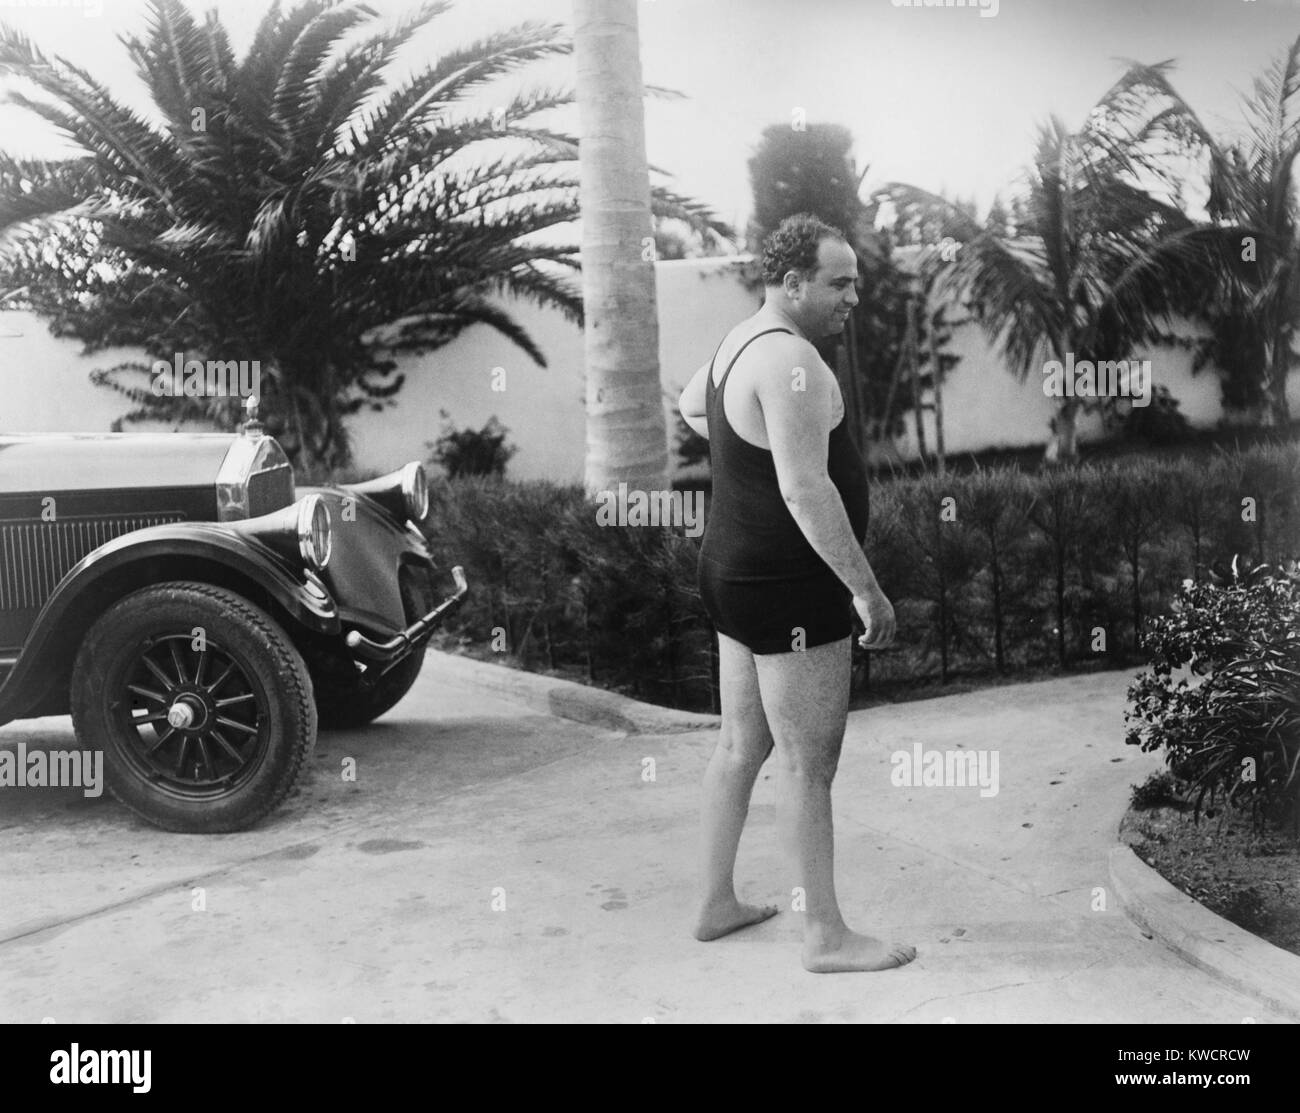 Chicago gangster Al Capone wearing a bathing suit at his Florida home. Ca. 1929-31. - (BSLOC 2015 1 11) Stock Photo